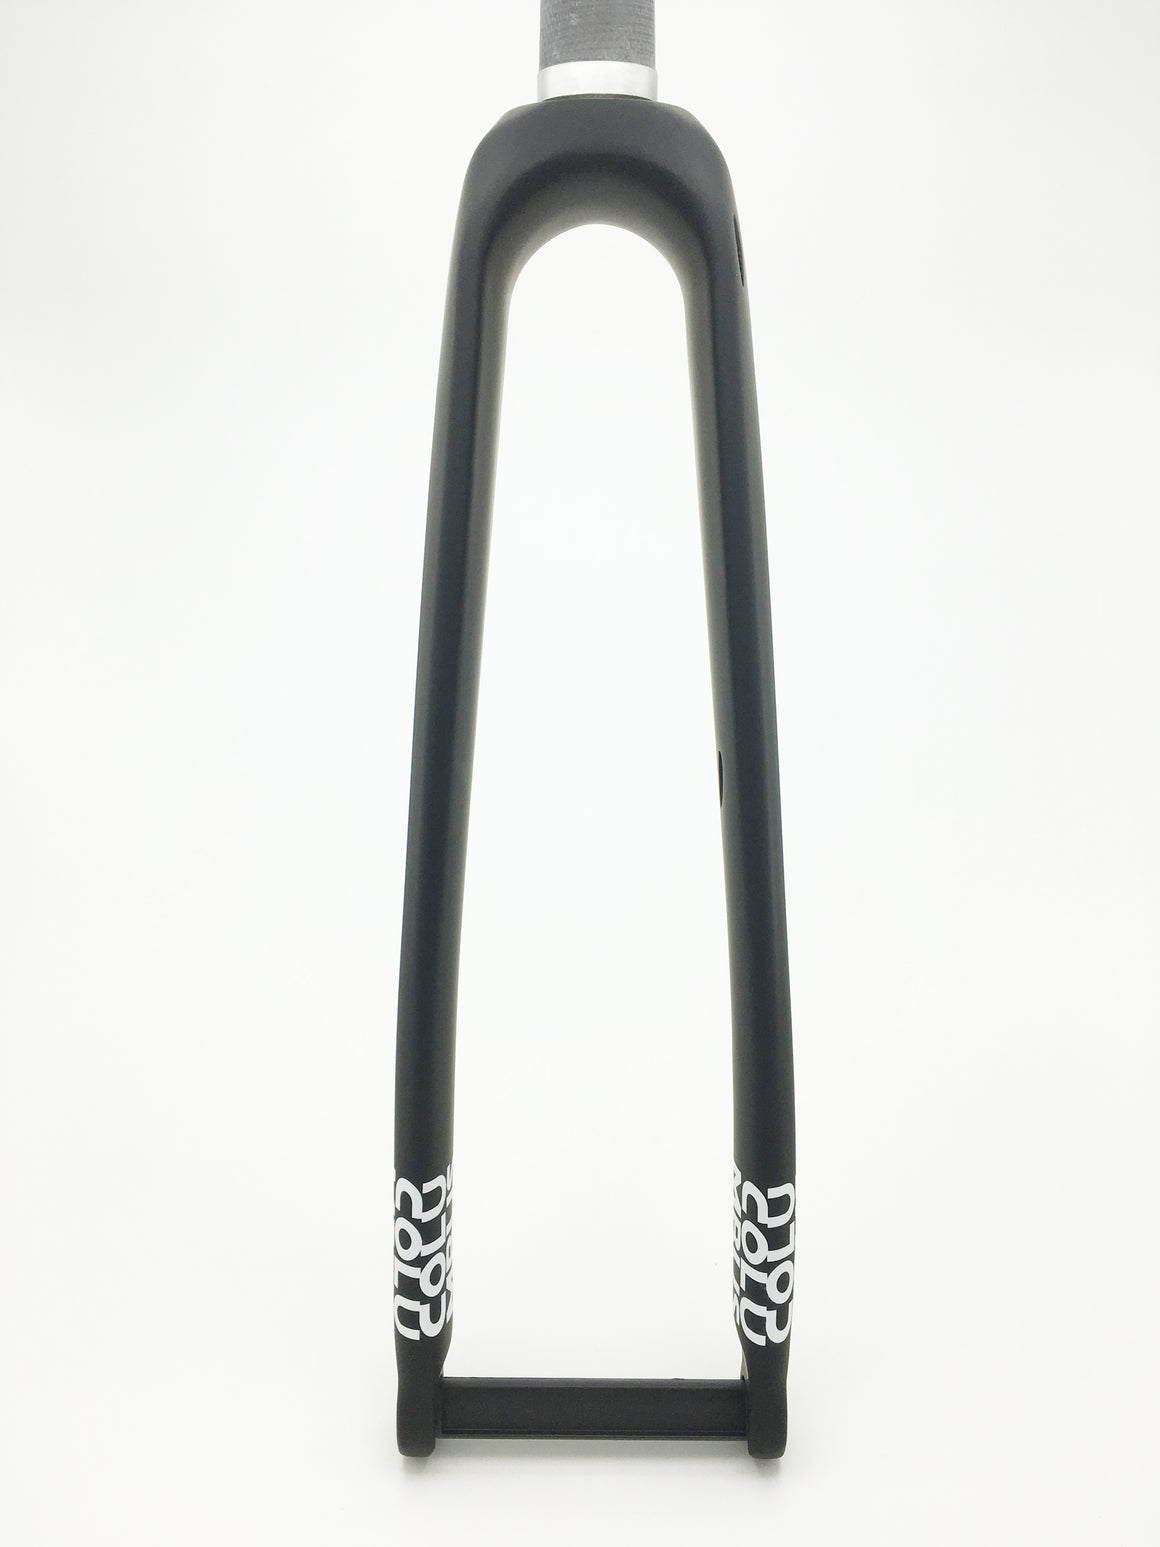 Columbus Futura Gravel disc fork - painted - front view